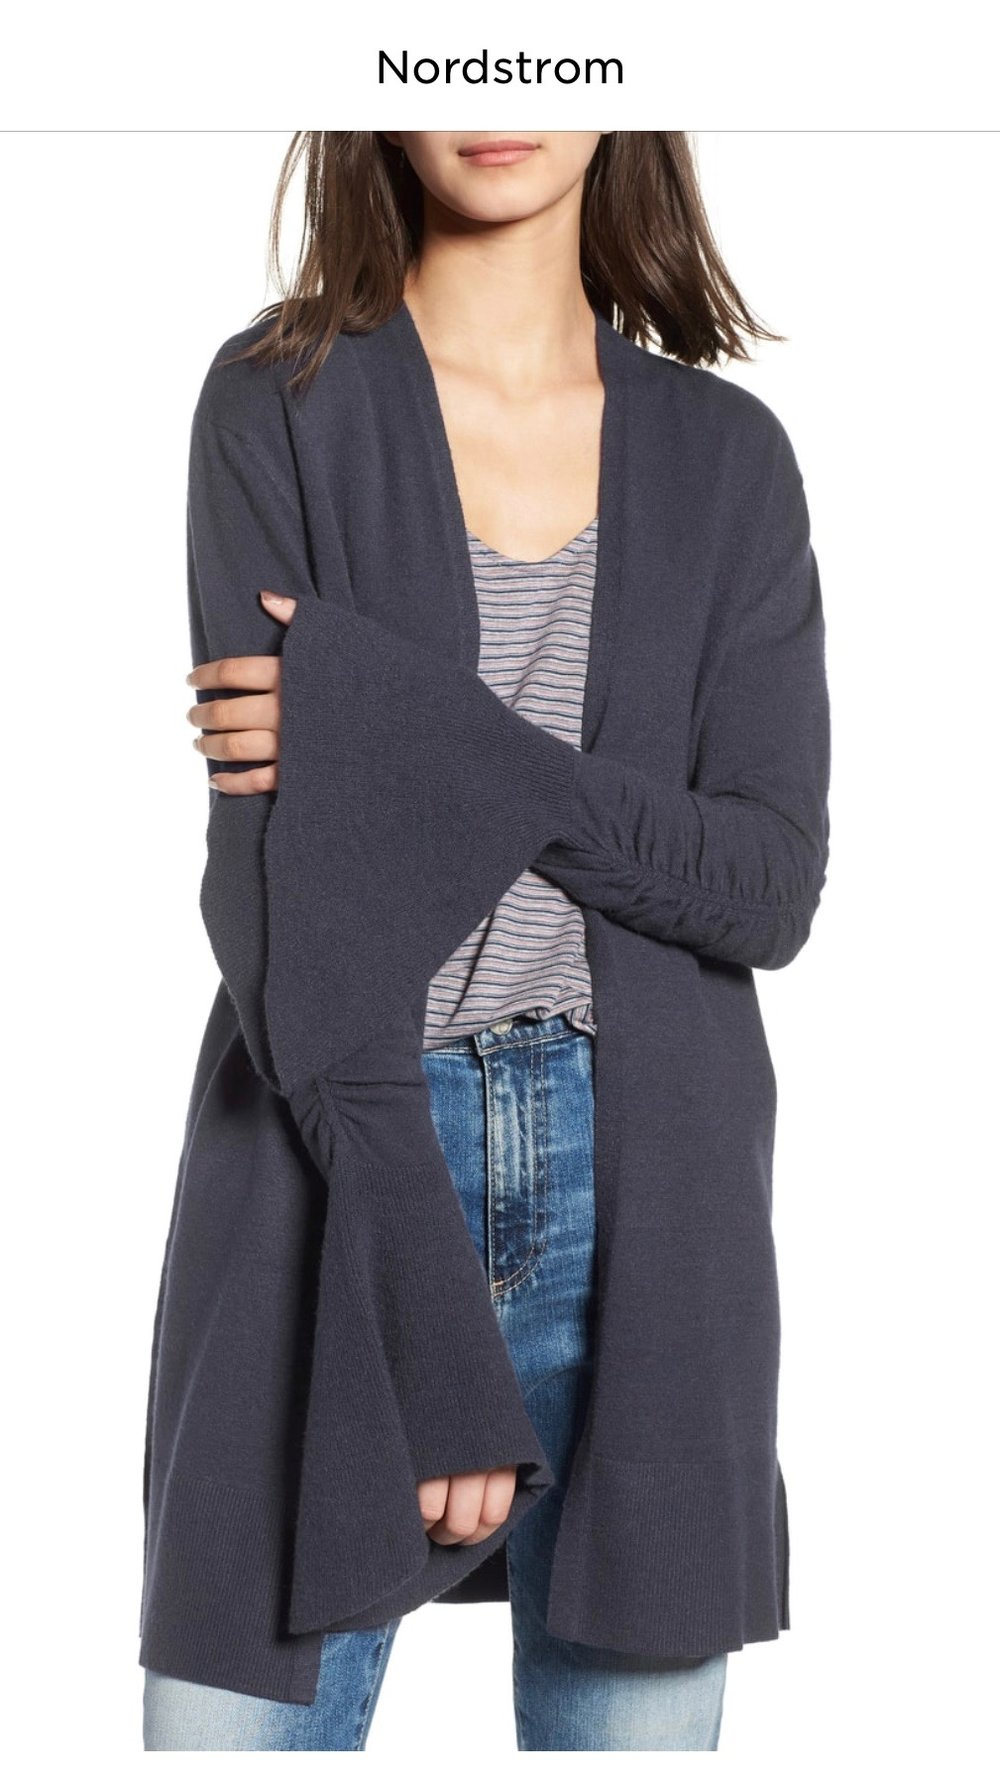 Hinge Ruched Bell Sleeve Cardigan   NAVY INDIA INK, Small  $58.90